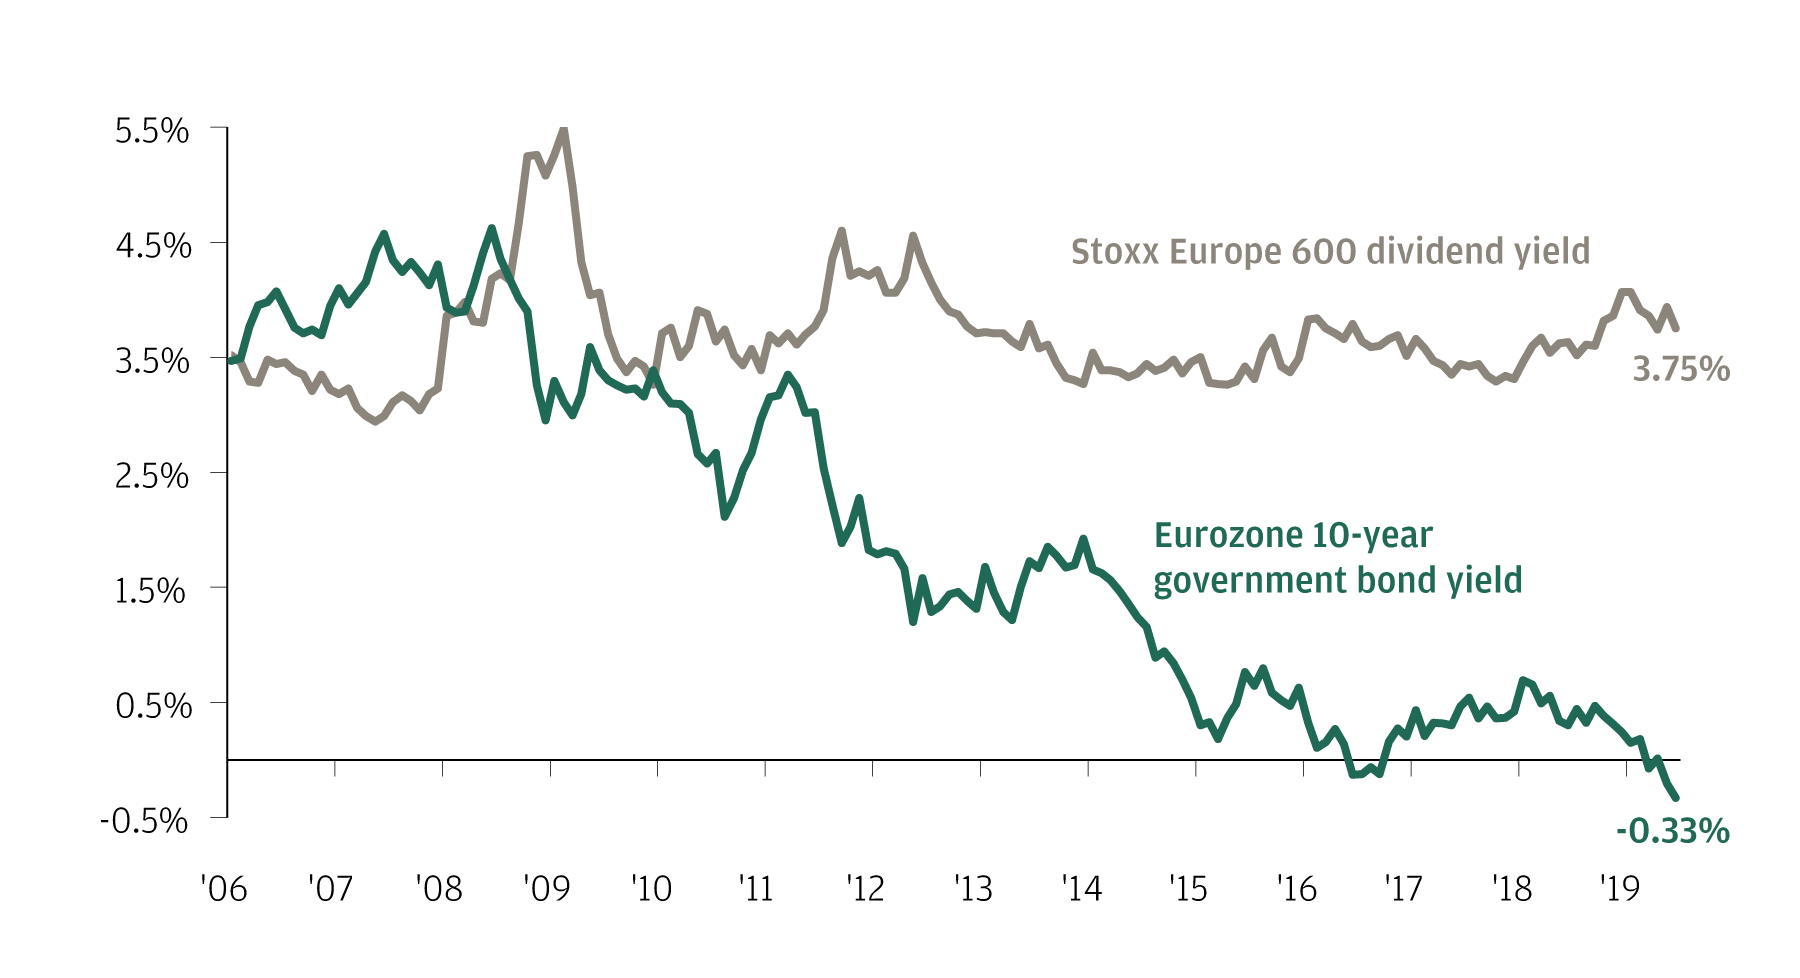 Shows bond yields are at record lows, whilst dividend yields remain high